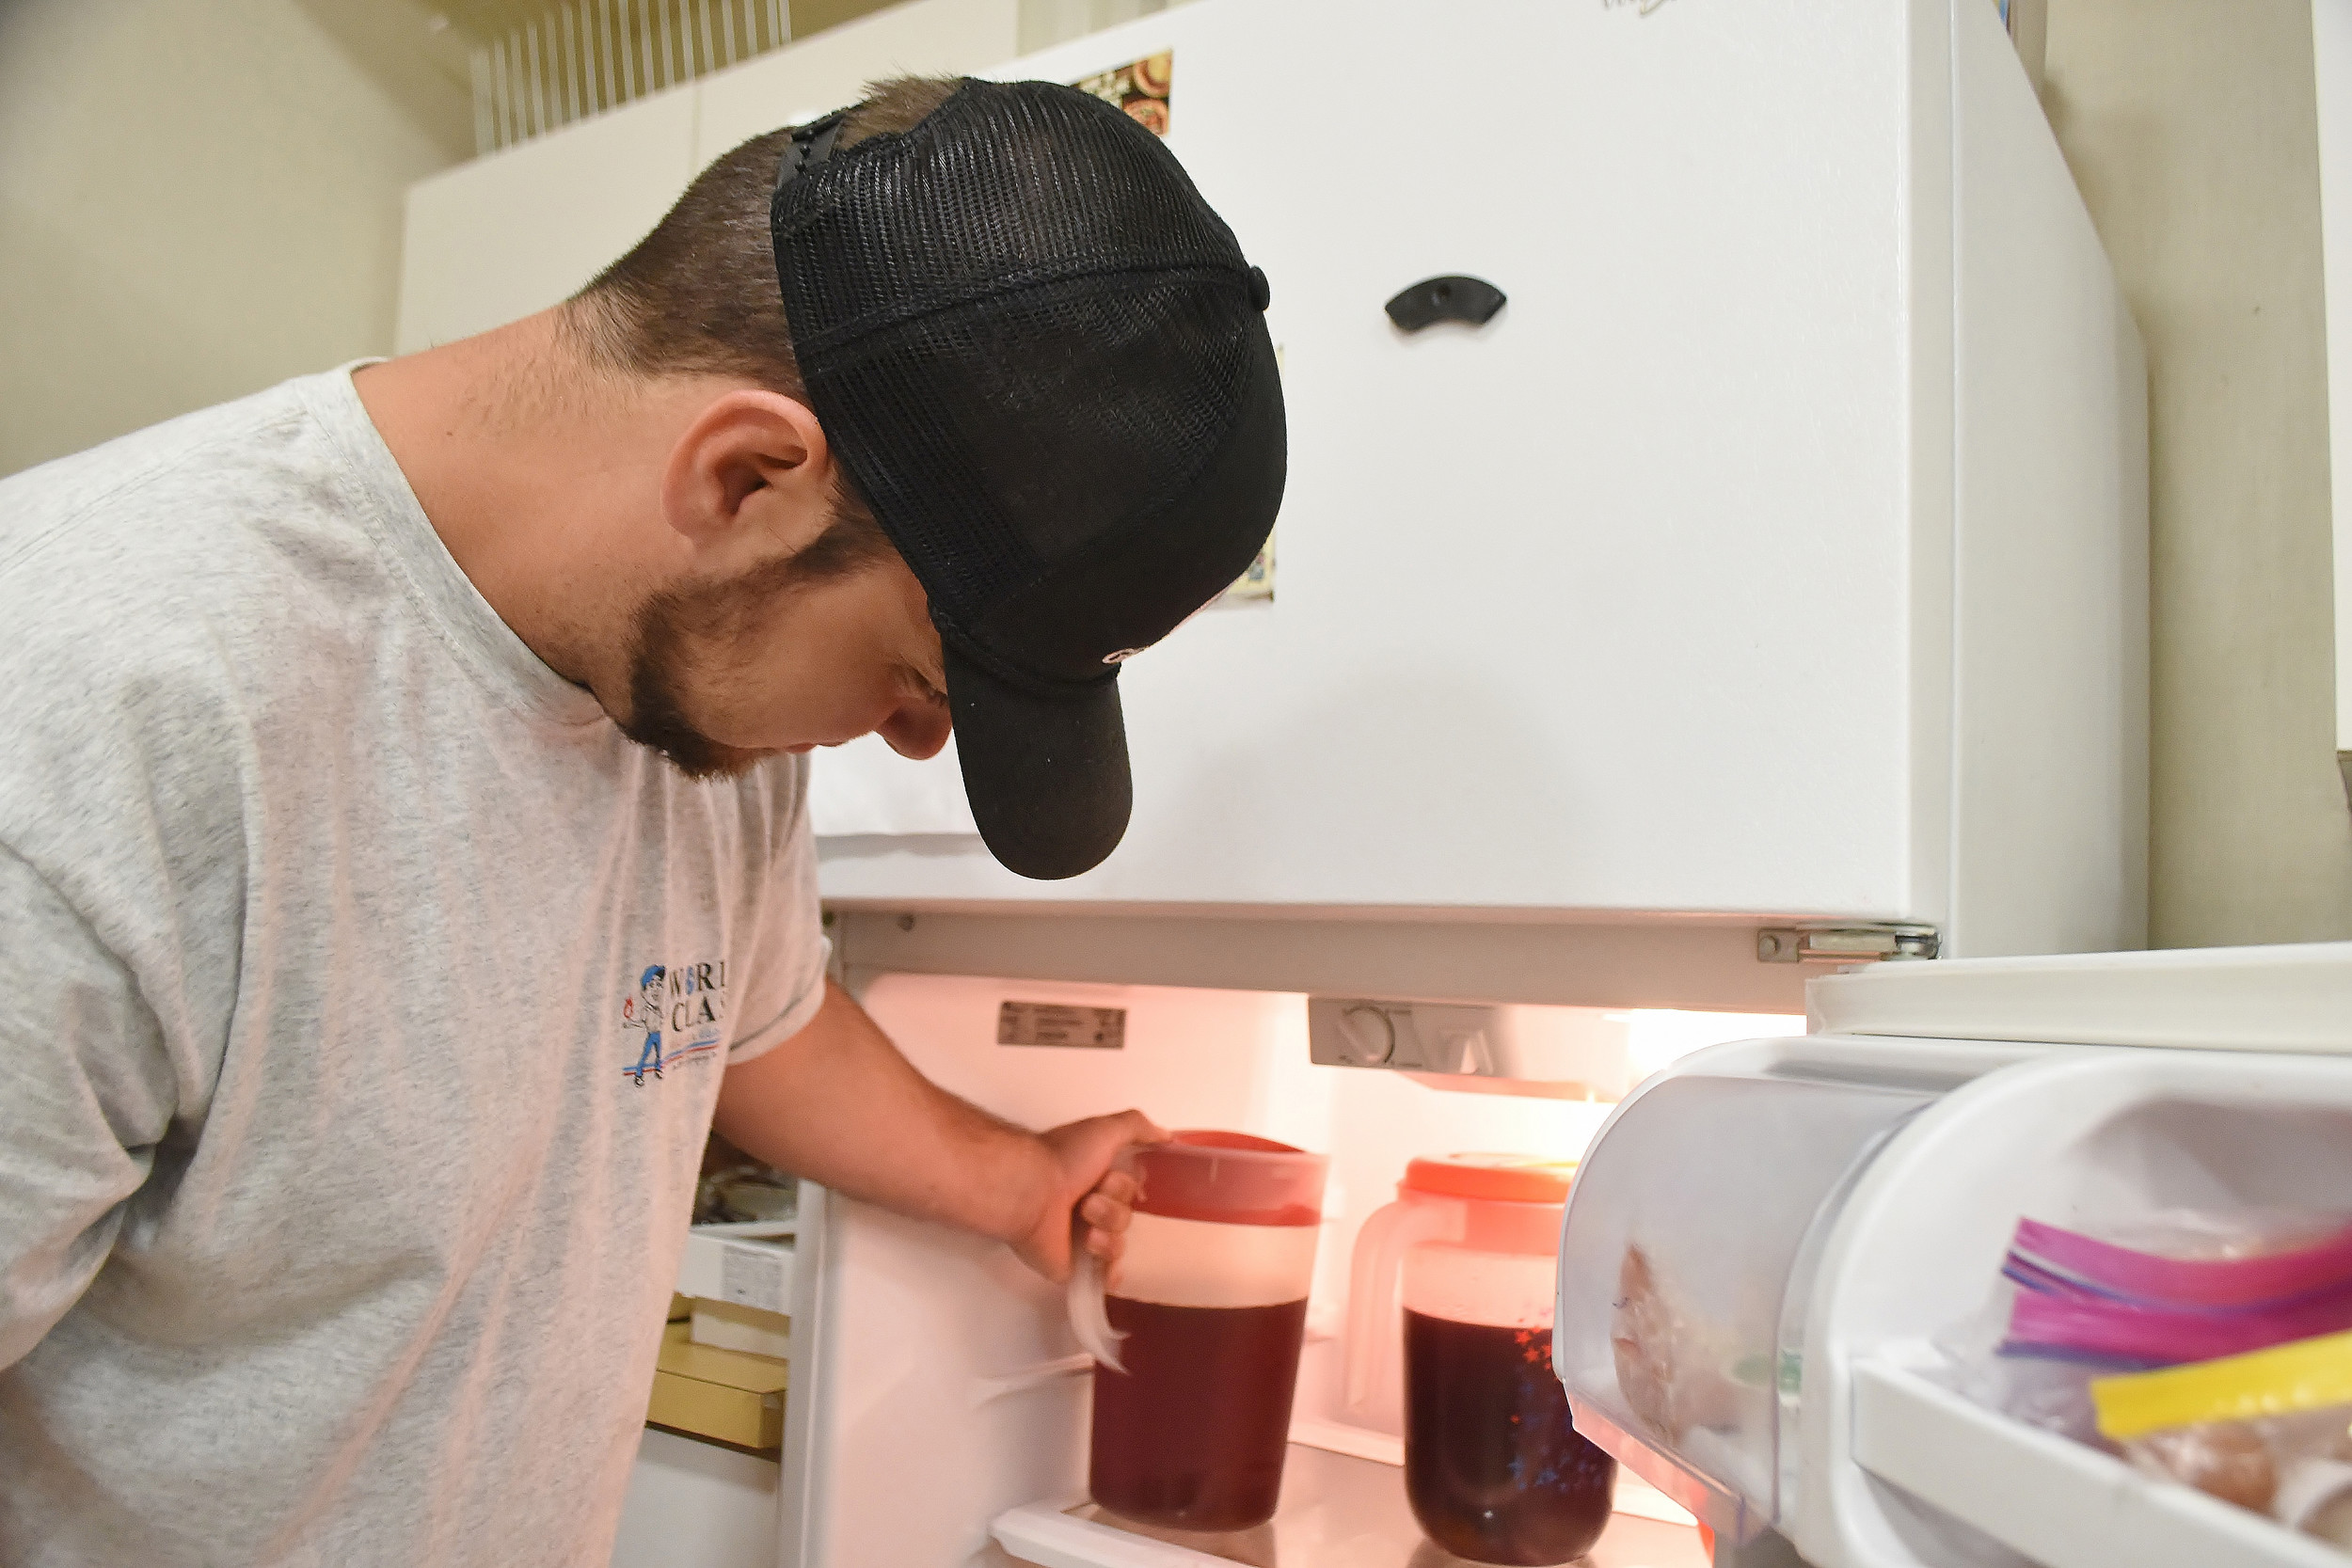 "Dakota, a guest at the Good Neighbor Homeless Shelter in Cartersville, reaches into the facility's refrigerator for a pitcher of tea. The nonprofit is participating in the State Farm Neighborhood Assist contest, in which the Top 40 ""causes"" will each be awarded $25,000. If chosen as a winner, the Good Neighbor will use part of its winnings to replace appliances in the shelter's kitchen."